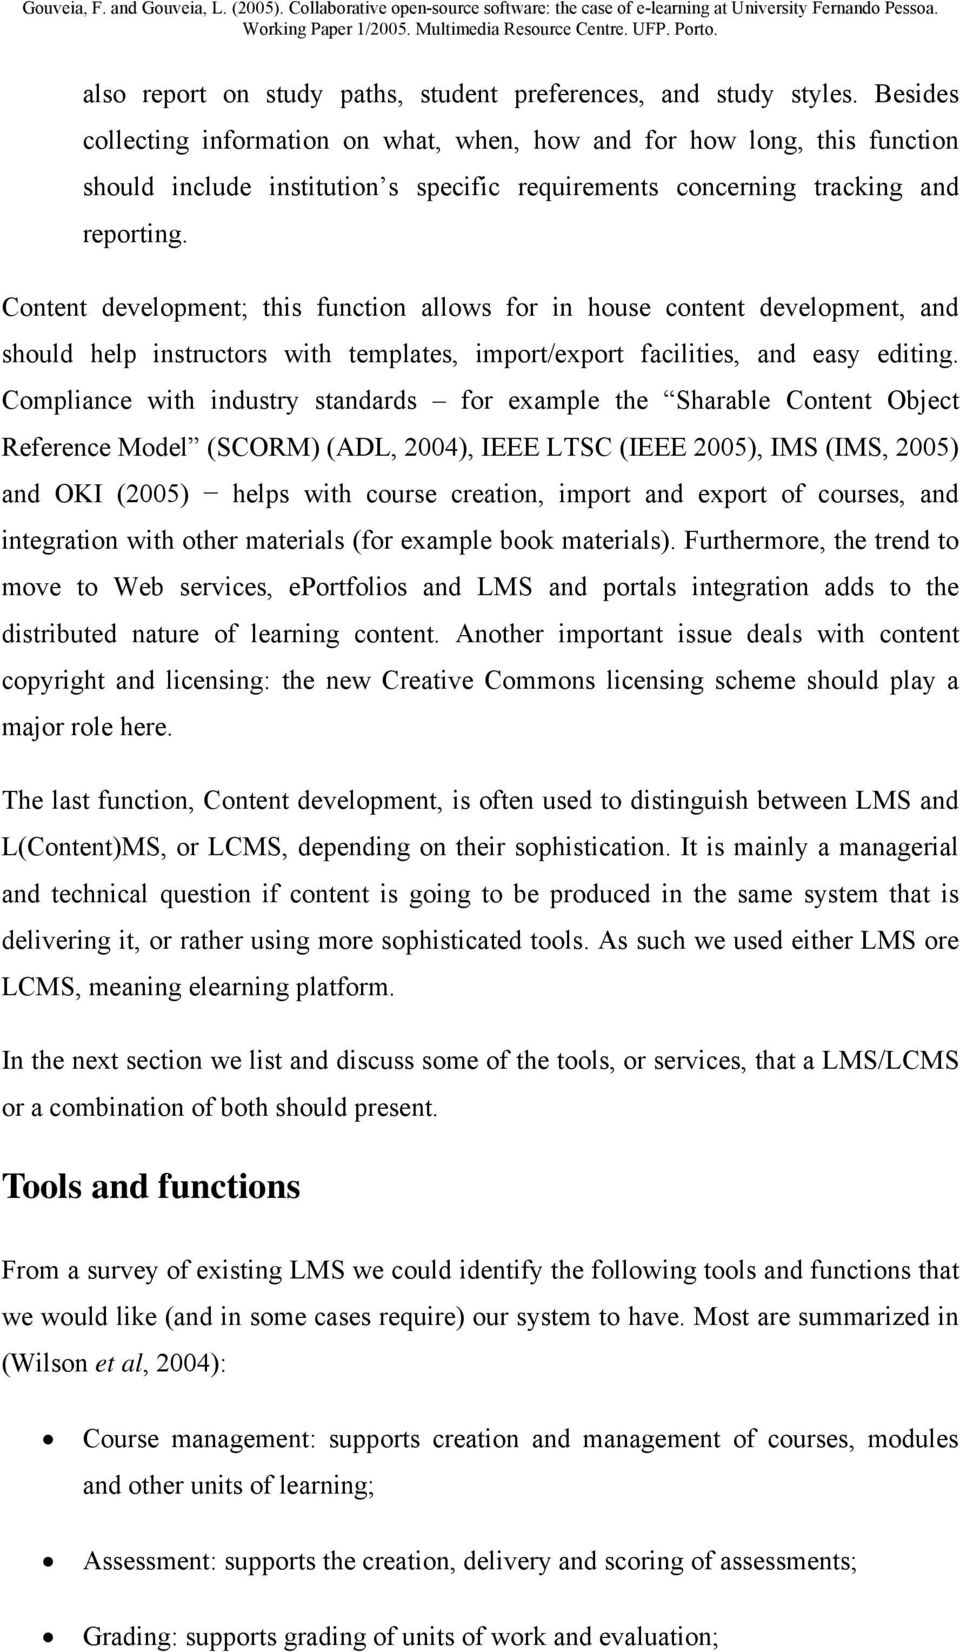 Collaborative Open-Source software: the case of e-learning